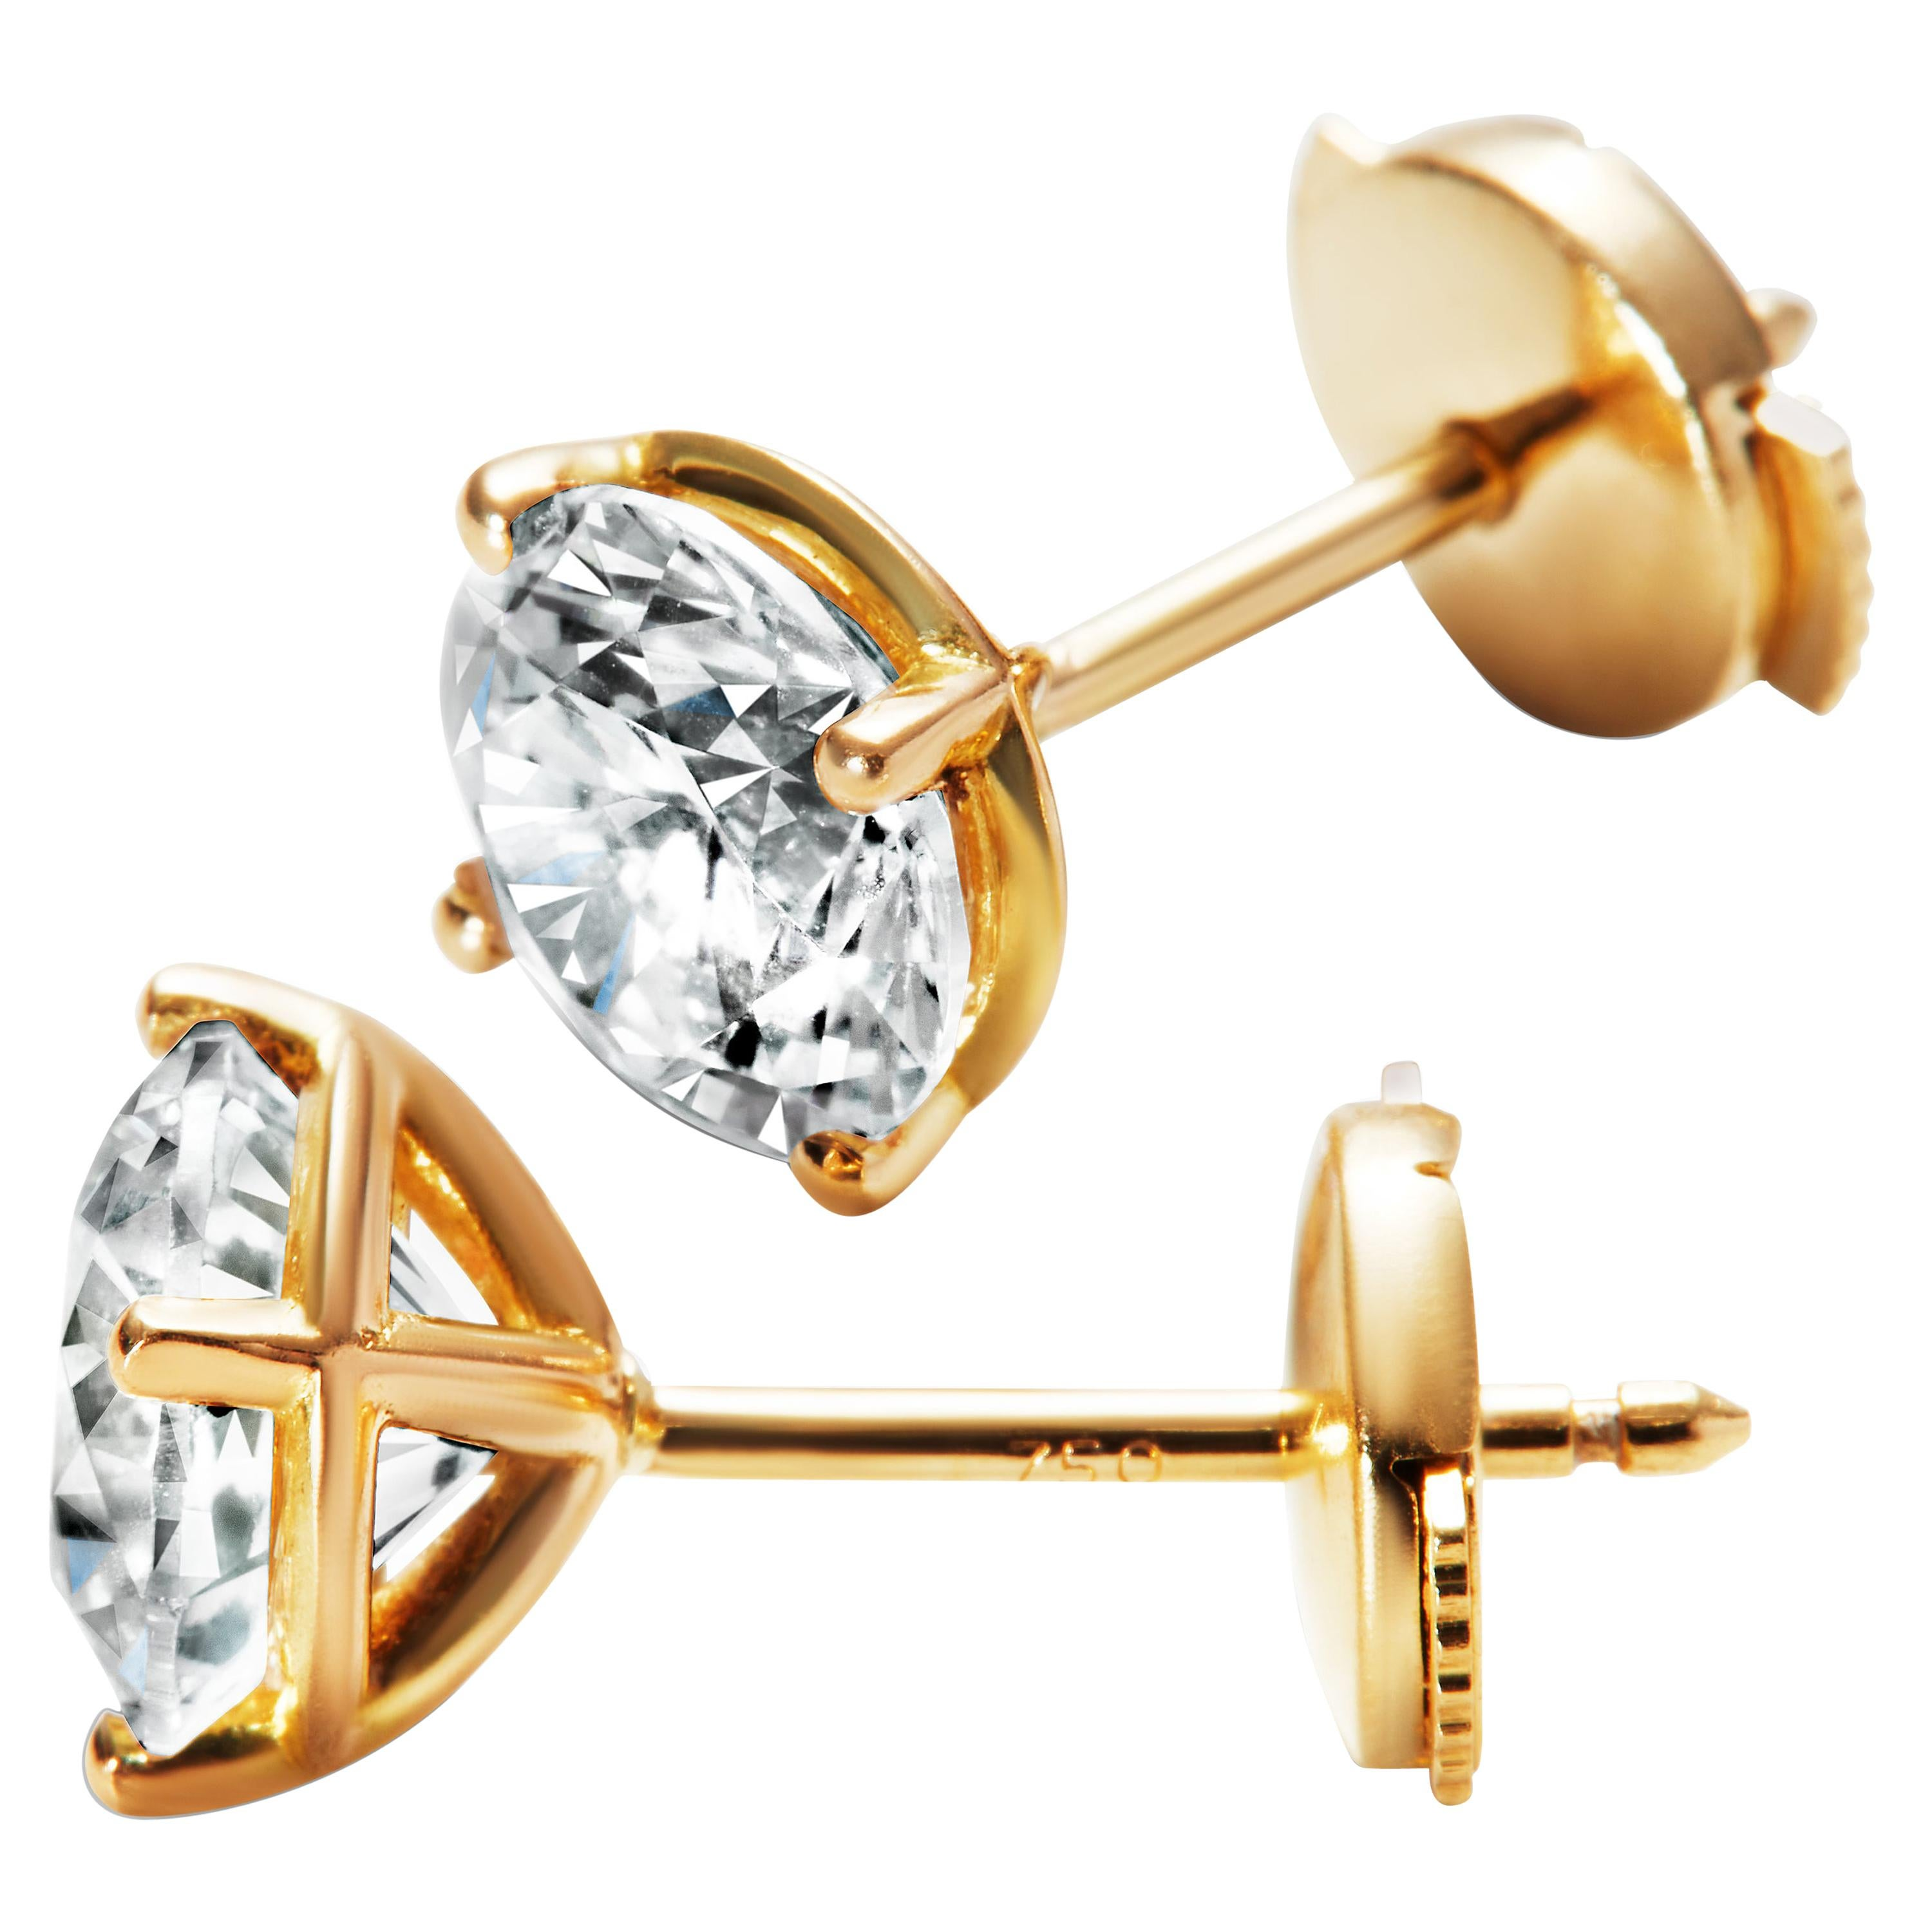 1ct Solitaire Traceable Diamond Ear Studs In 18k Yellow Gold by Rocks for Life